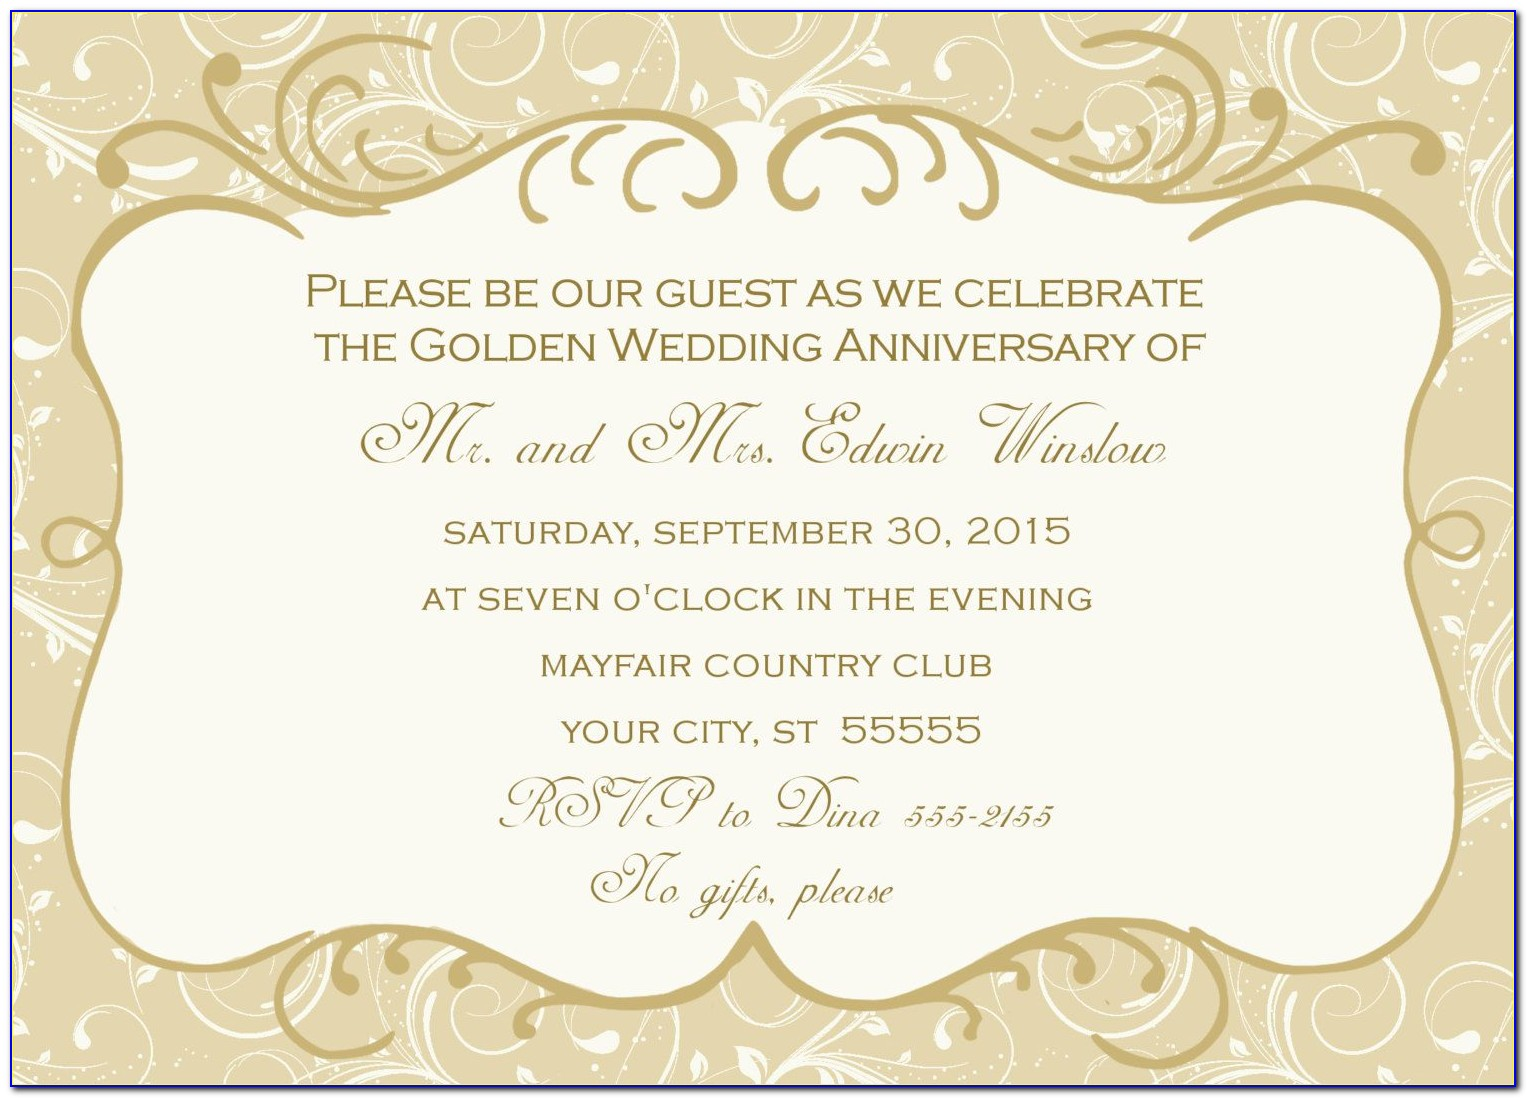 Golden Wedding Anniversary Invitations Templates